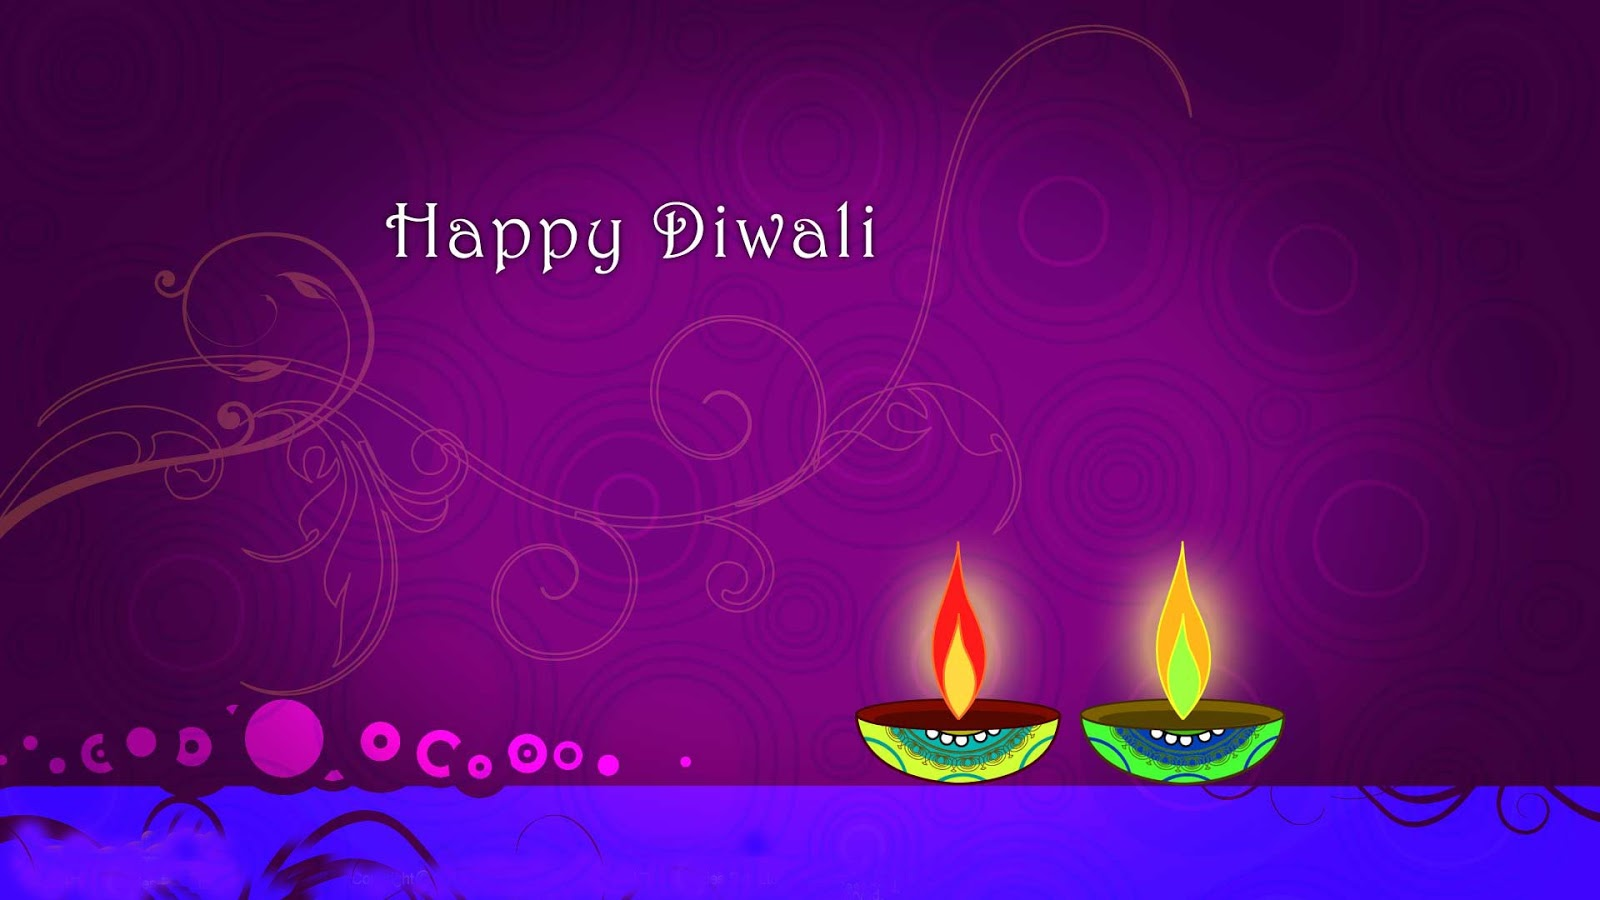 100 happy diwali sms message images cards wishes collections diwali hd wallpaper download 6 kristyandbryce Gallery